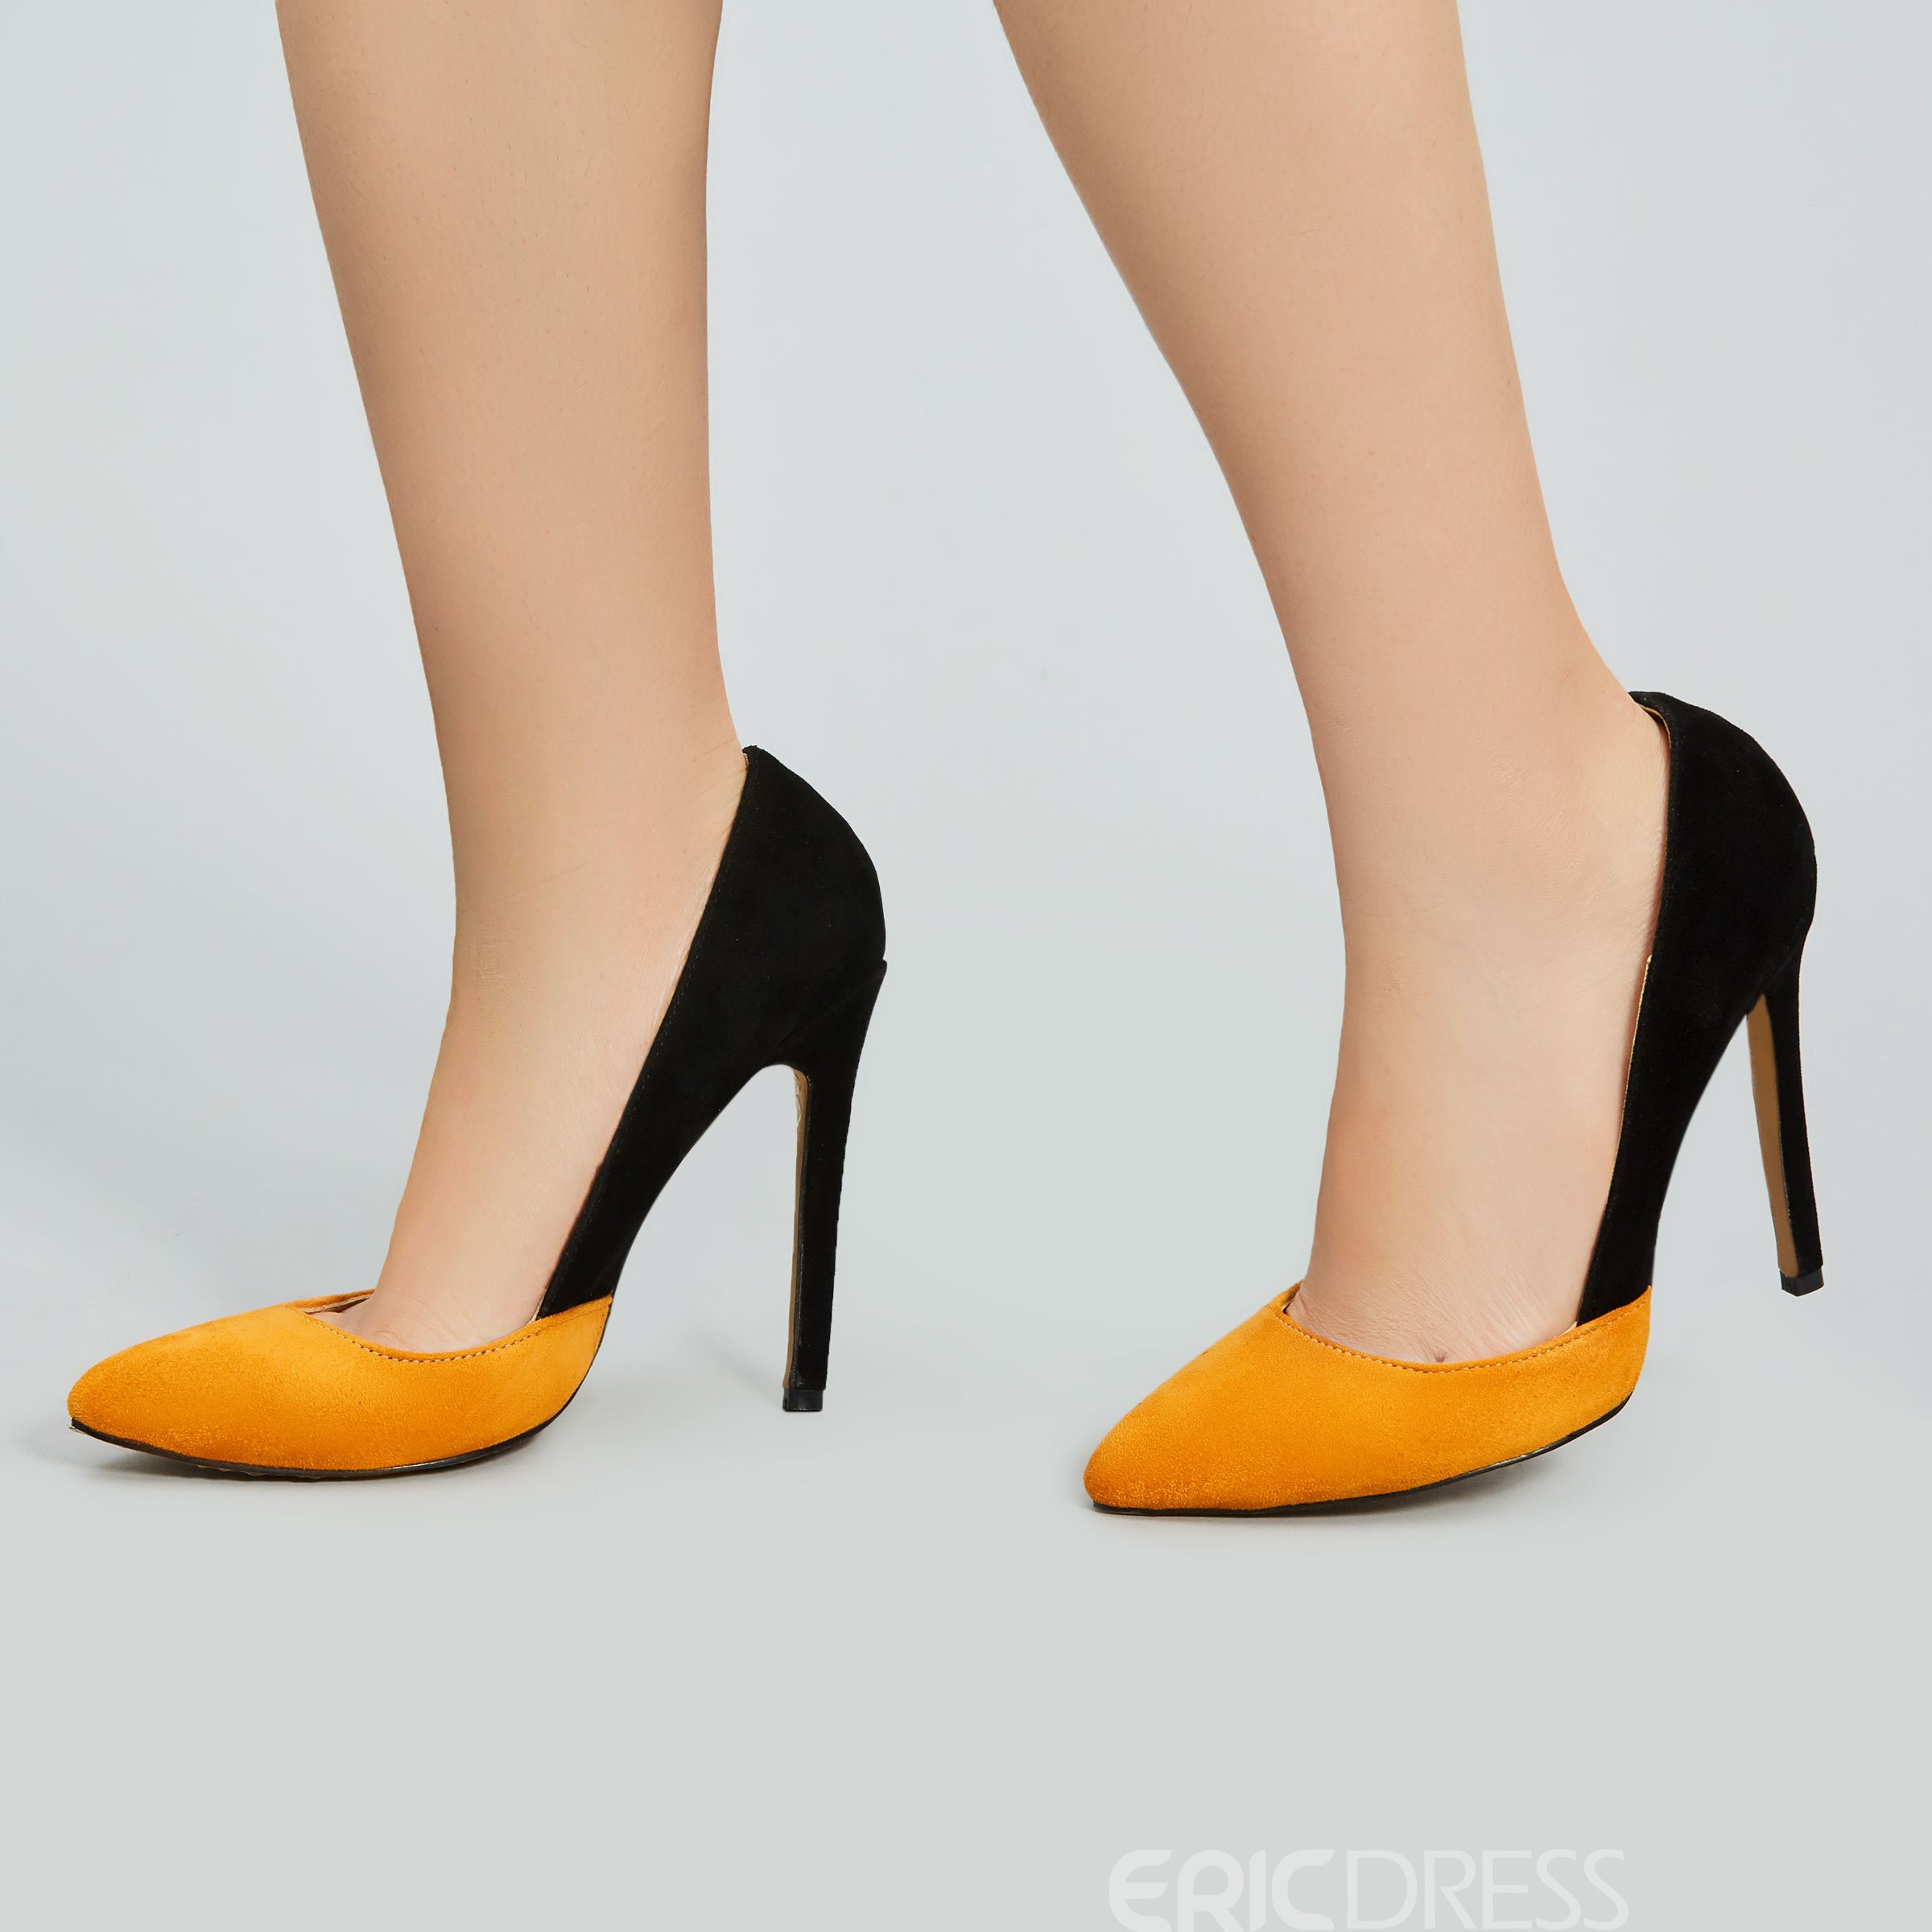 Ericdress New Chic Patchwork Pointed-toe Pumps